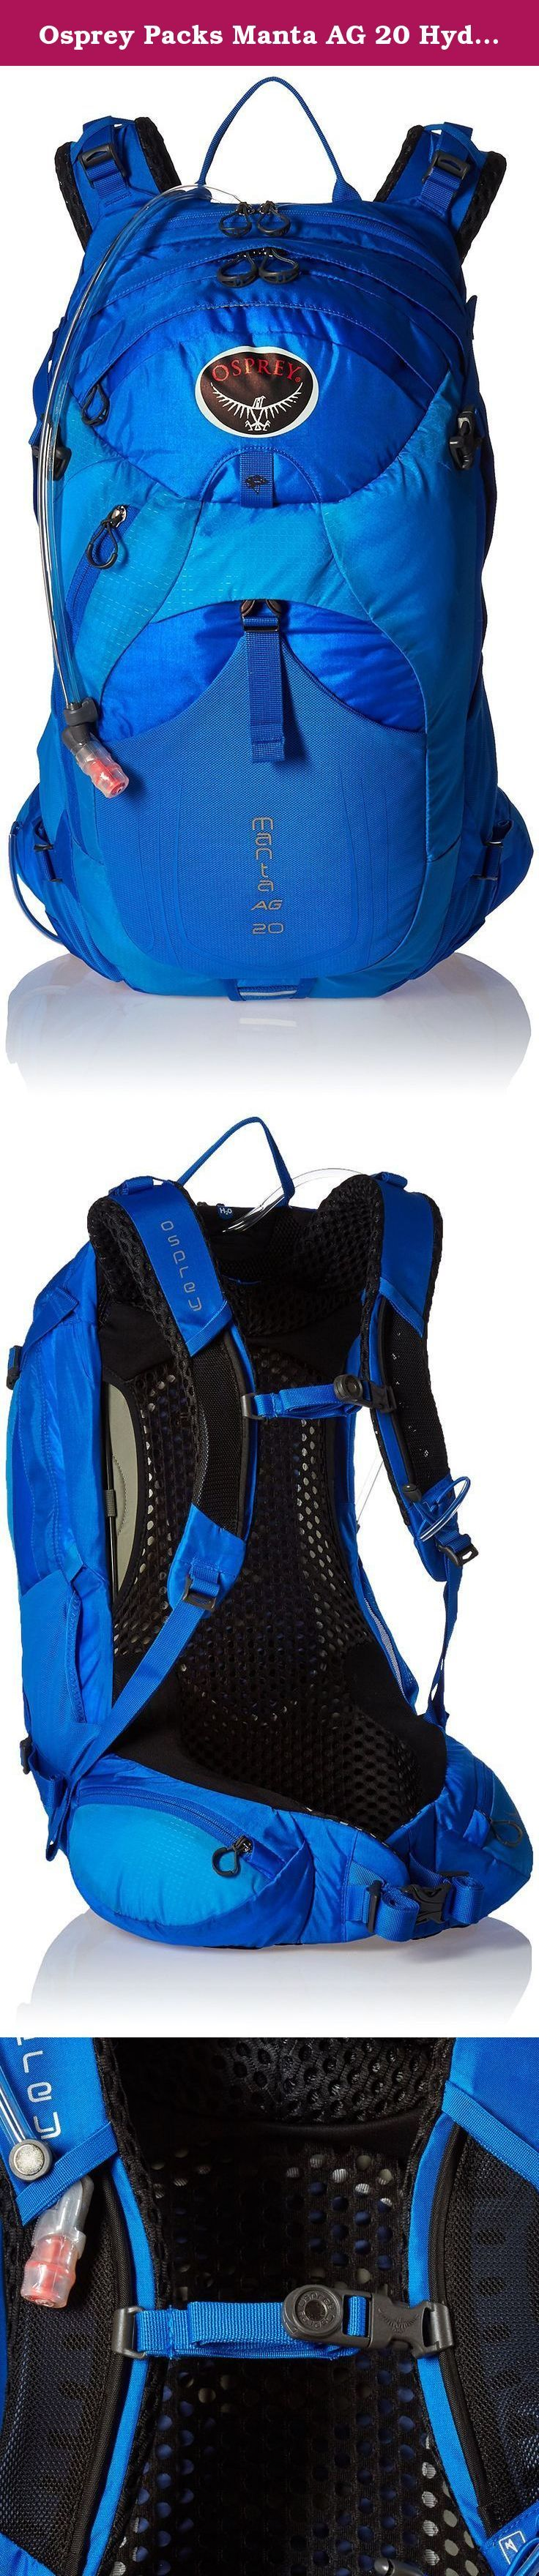 Osprey Packs Manta AG 20 Hydration Pack, Sonic Blue, One Size. Get out the door for a long walk in the hills with osprey's Manta ag 20. The anti-gravity (ag) suspension system-combination of light wire frame, mesh back panel, bio stretch shoulder harness and ag hip belt-distributes weight to keep you comfortable no matter how far you roam. Dual upper and lower compression straps help stabilize the load and provide add-on storage options if you have extra bulky gear. The pack's main...